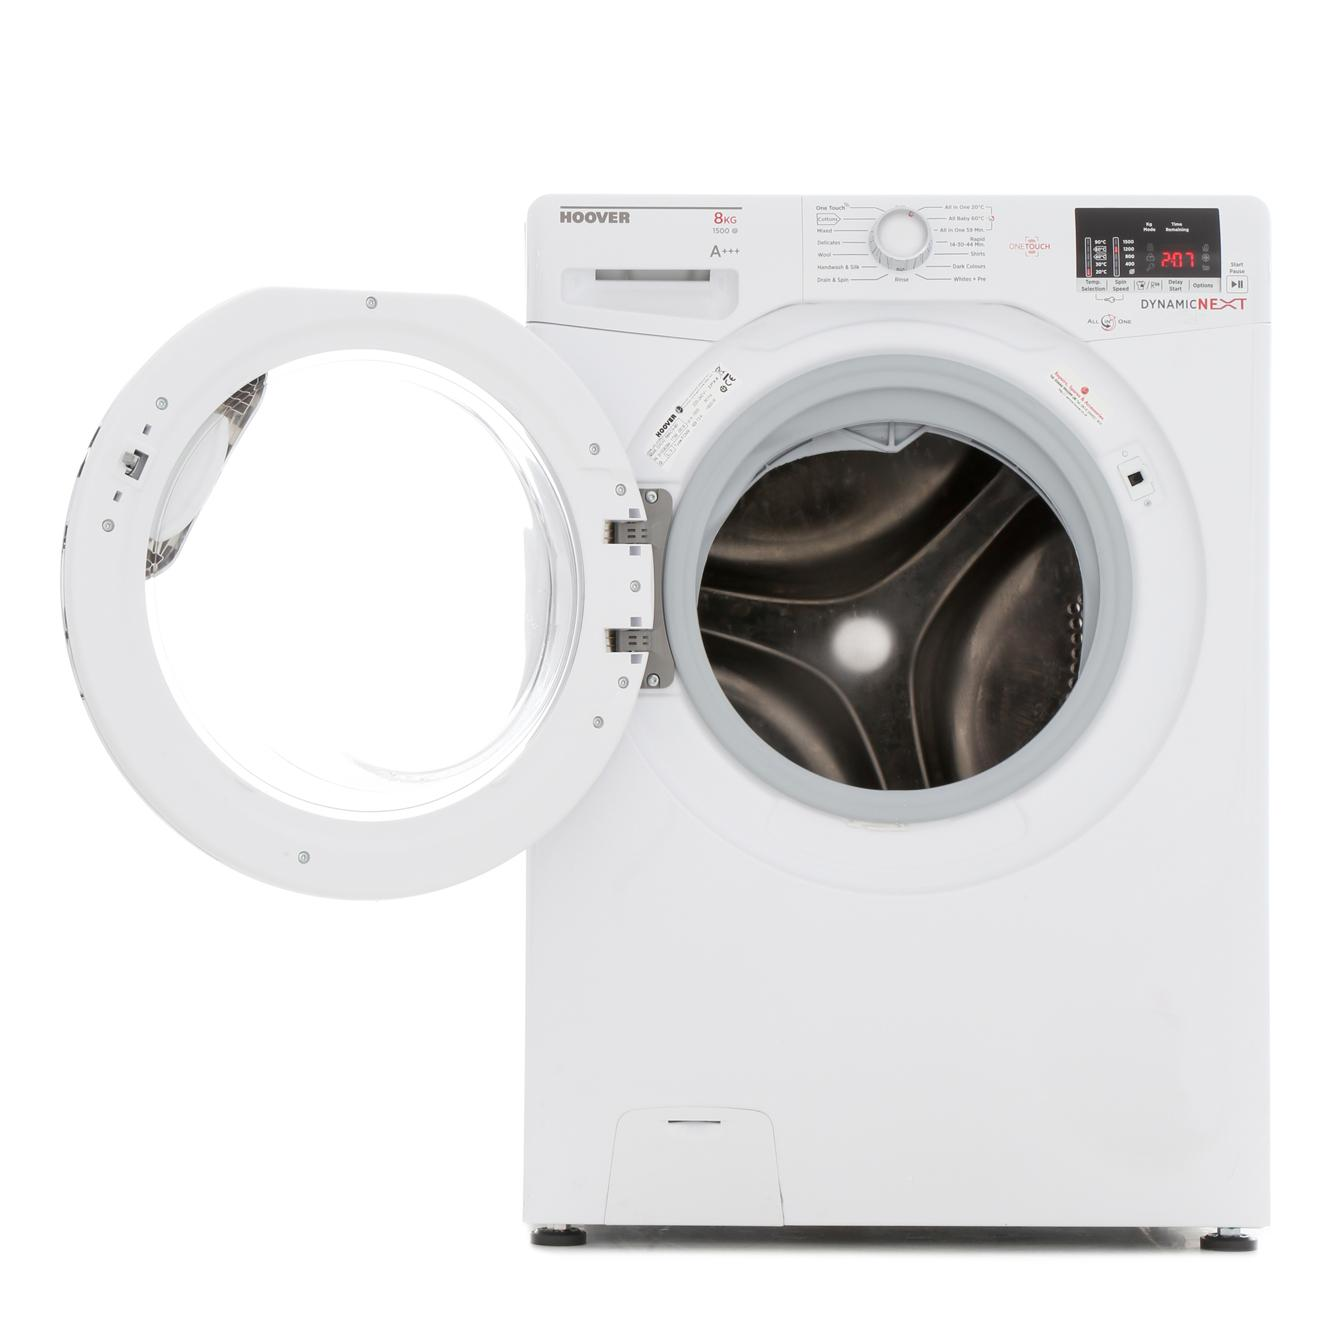 Hoover Dxoc58ac3 8kg 1500 Spin A Rated Washing Machine